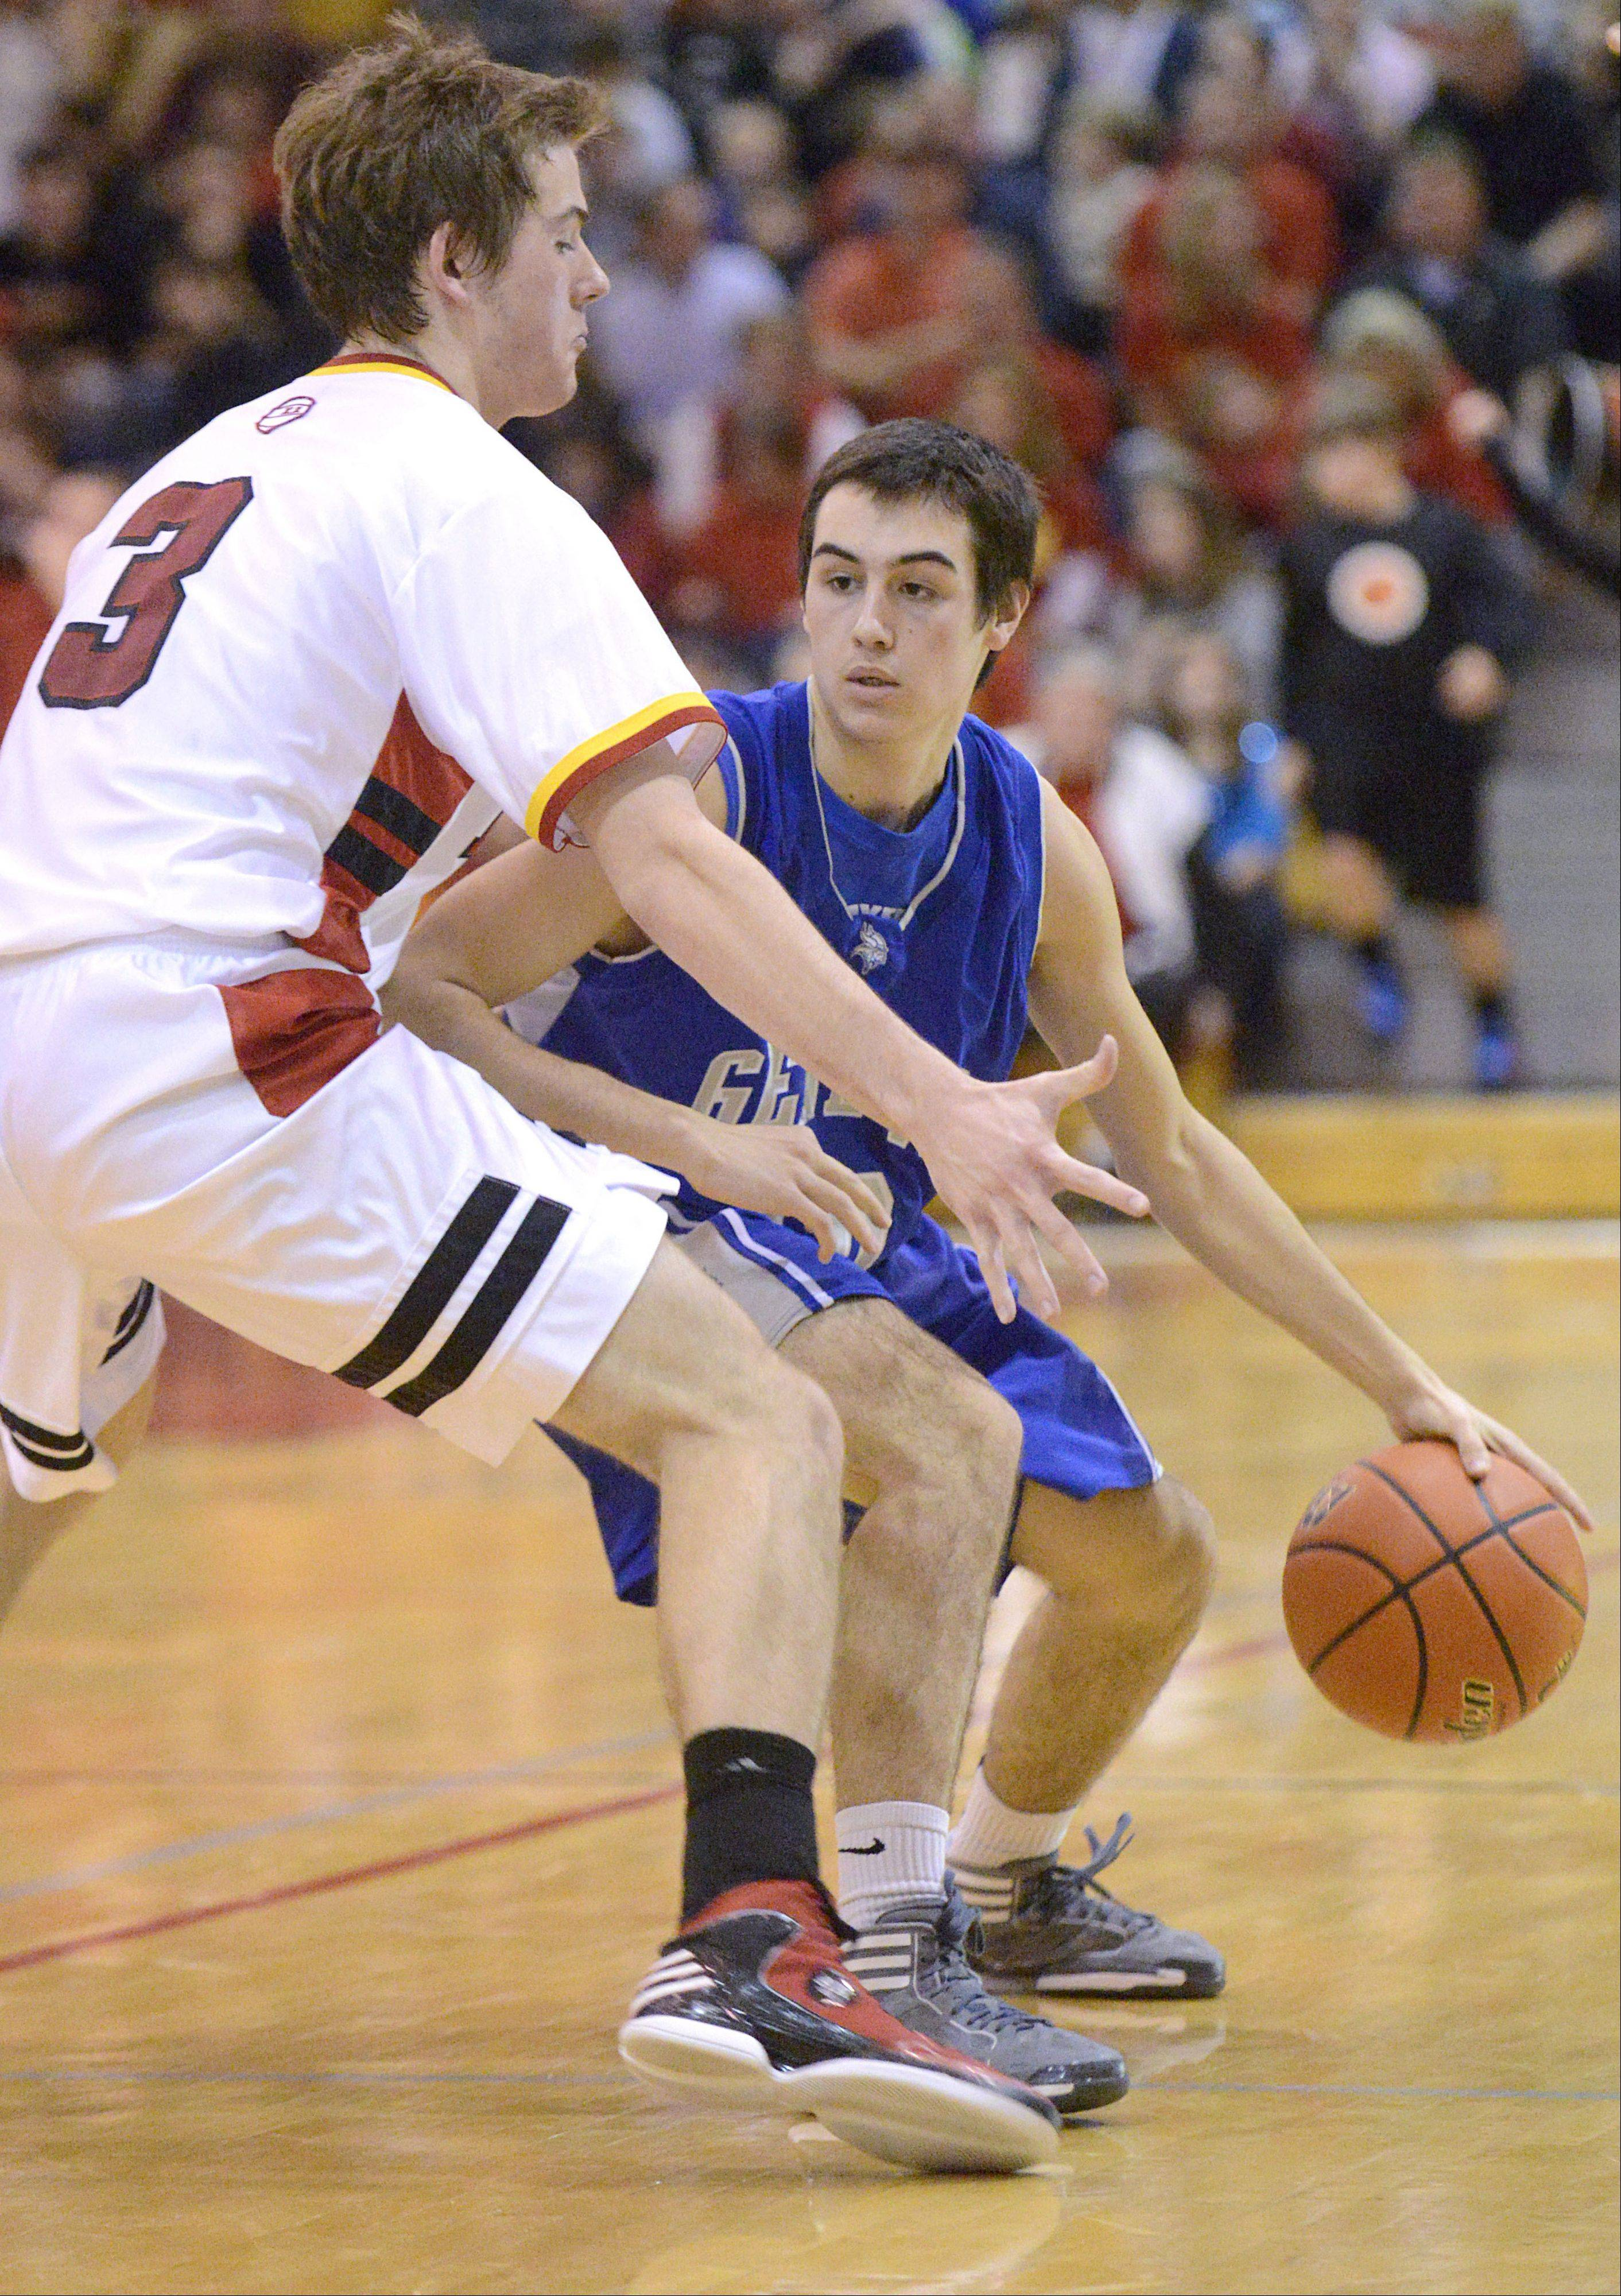 Geneva's Pat McCaffrey maneuvers his way around a block by Batavia's Jake Pollack in the fourth quarter on Friday, January 11.